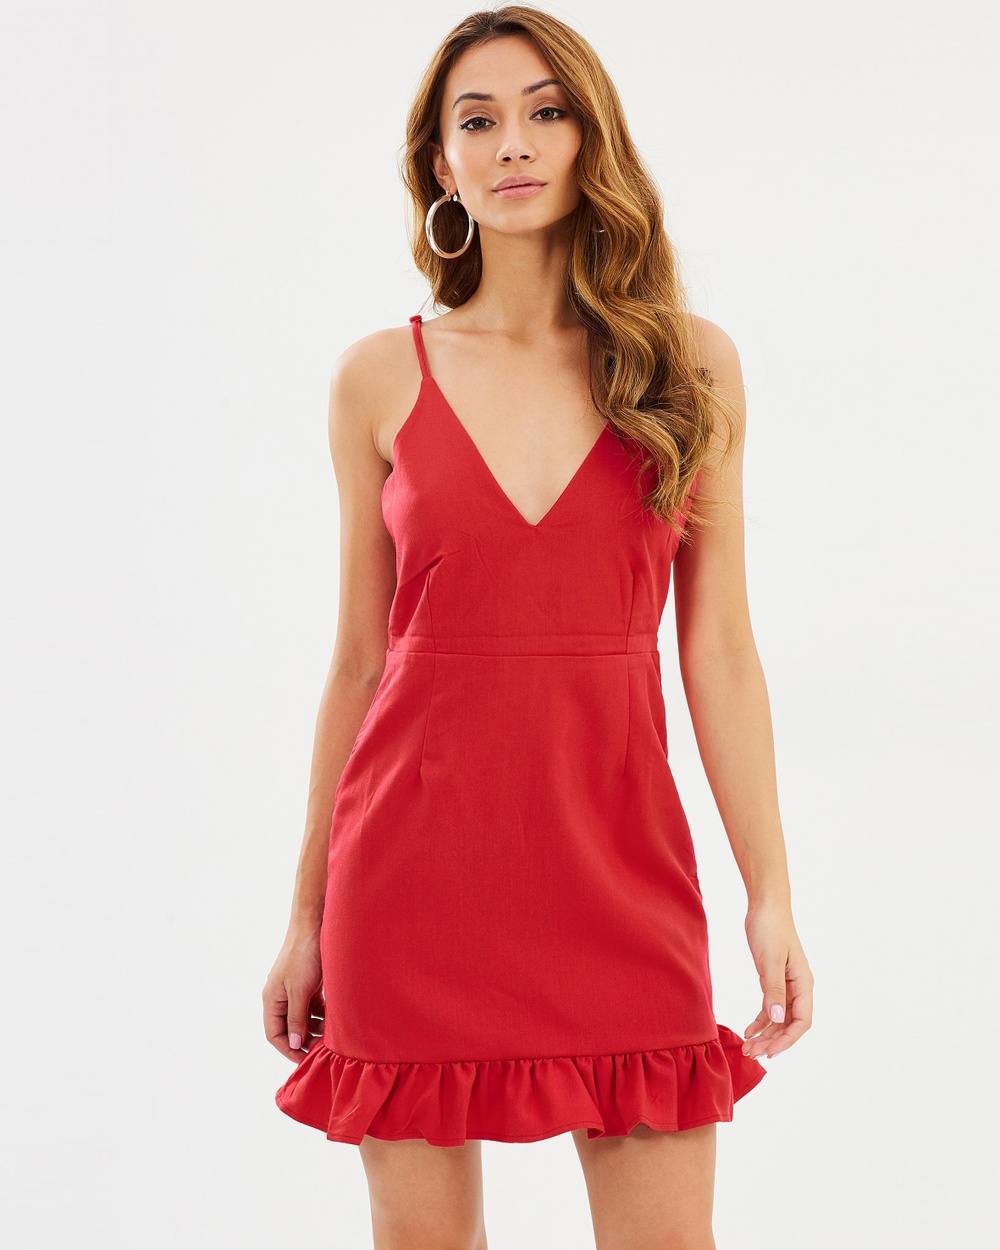 Missguided Crepe Plunge Frill Hem Body Con Dress Dresses Red Crepe Plunge Frill Hem Body-Con Dress